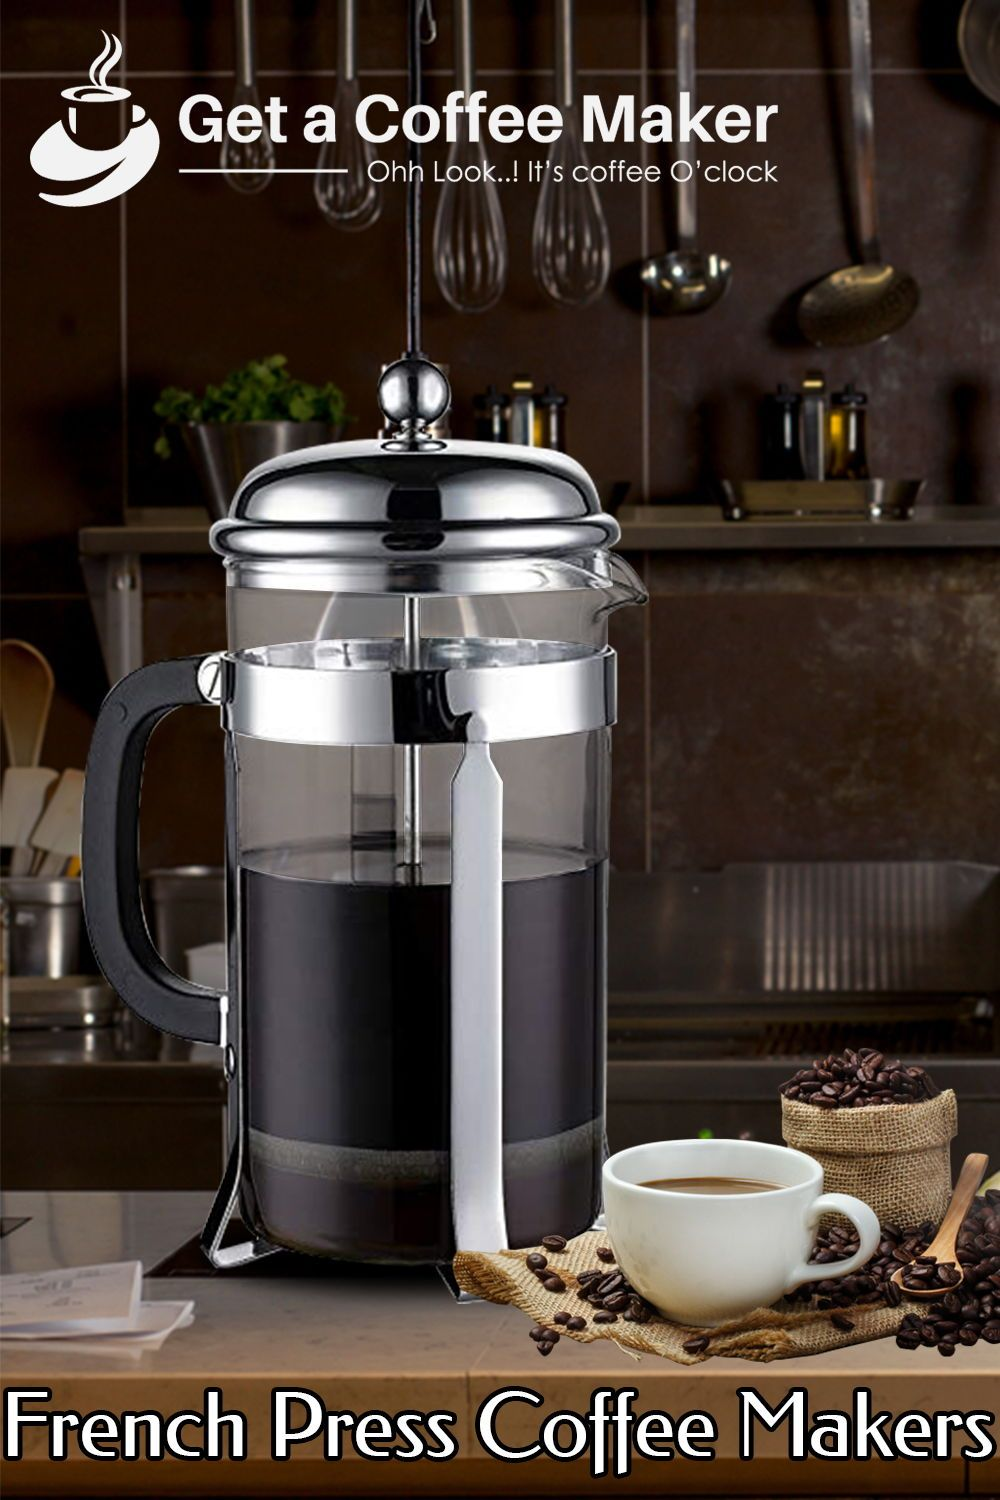 Top 10 French Press Coffee Makers Feb 2020 Reviews Buyers Guide French Press Coffee Maker French Press Coffee Coffee Maker